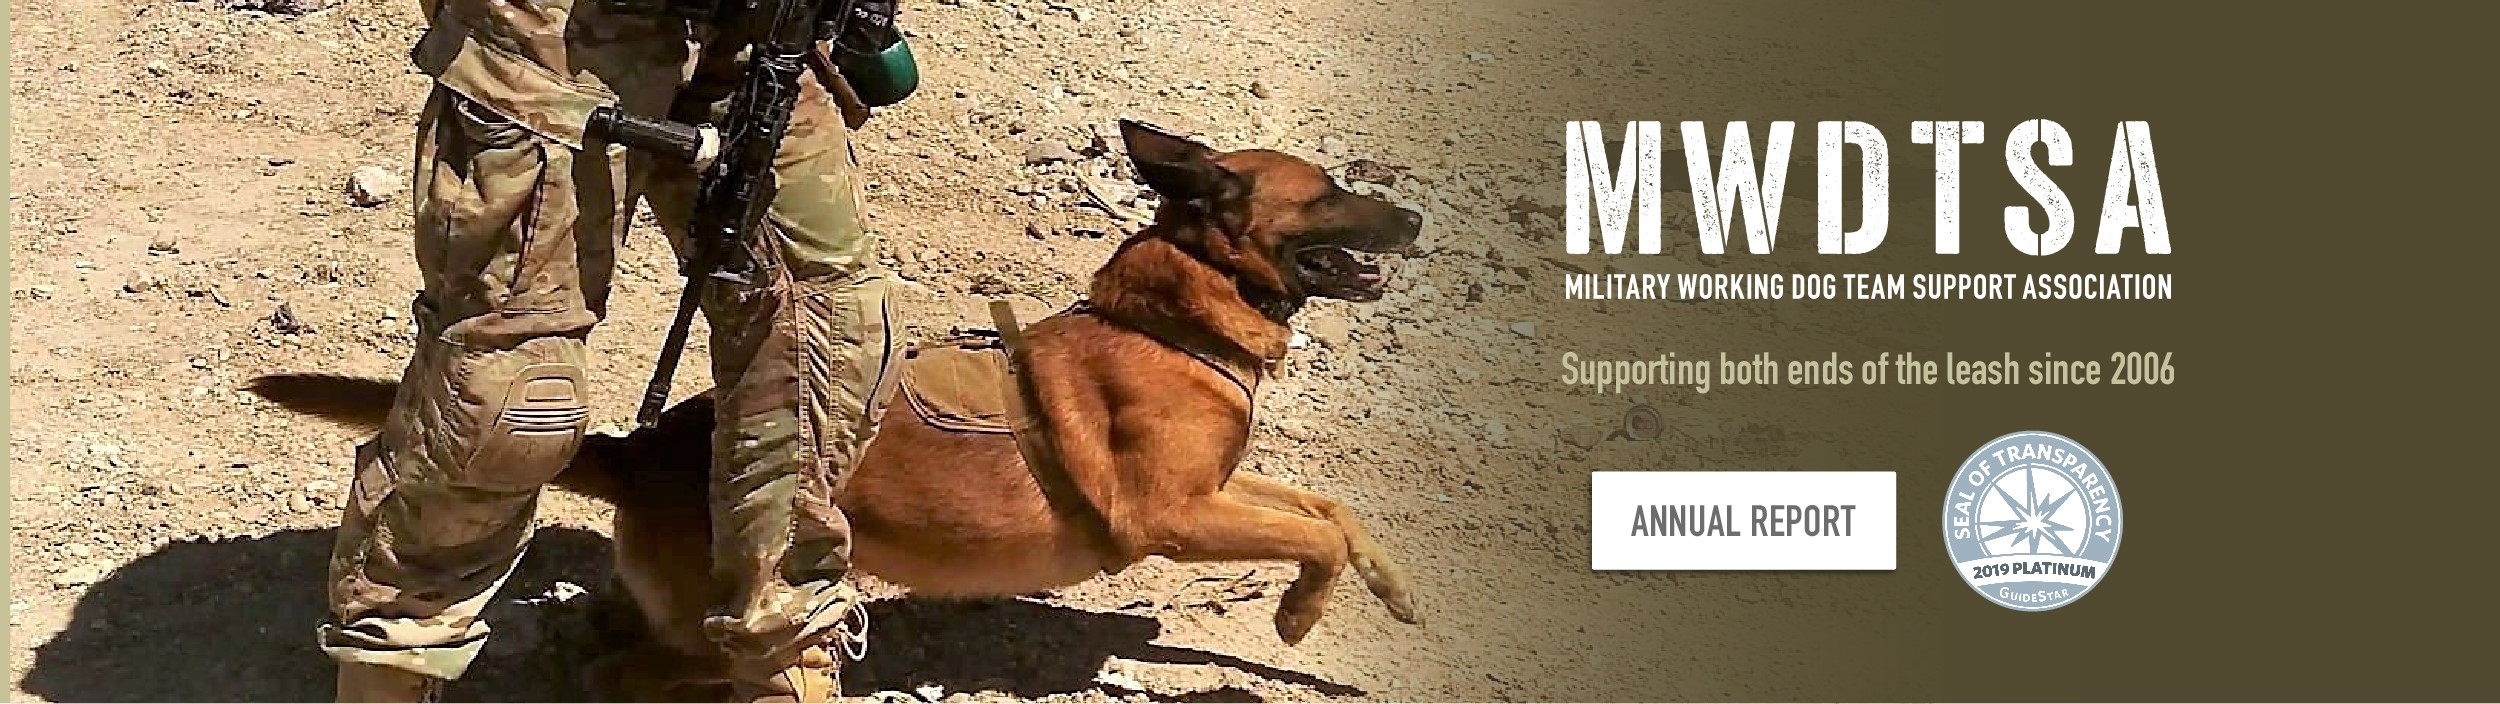 "This image shows a handler releasing a military working dog, who is lunging into action. The words to the right of the image read, ""MWDTSA, Military Working Dog Team Support Association. Supporting both ends of the leash since 2006."" There are two button--one for MWDTSA's annual report and the other links to MWDTSA's GuideStar Platinum Seal profile."